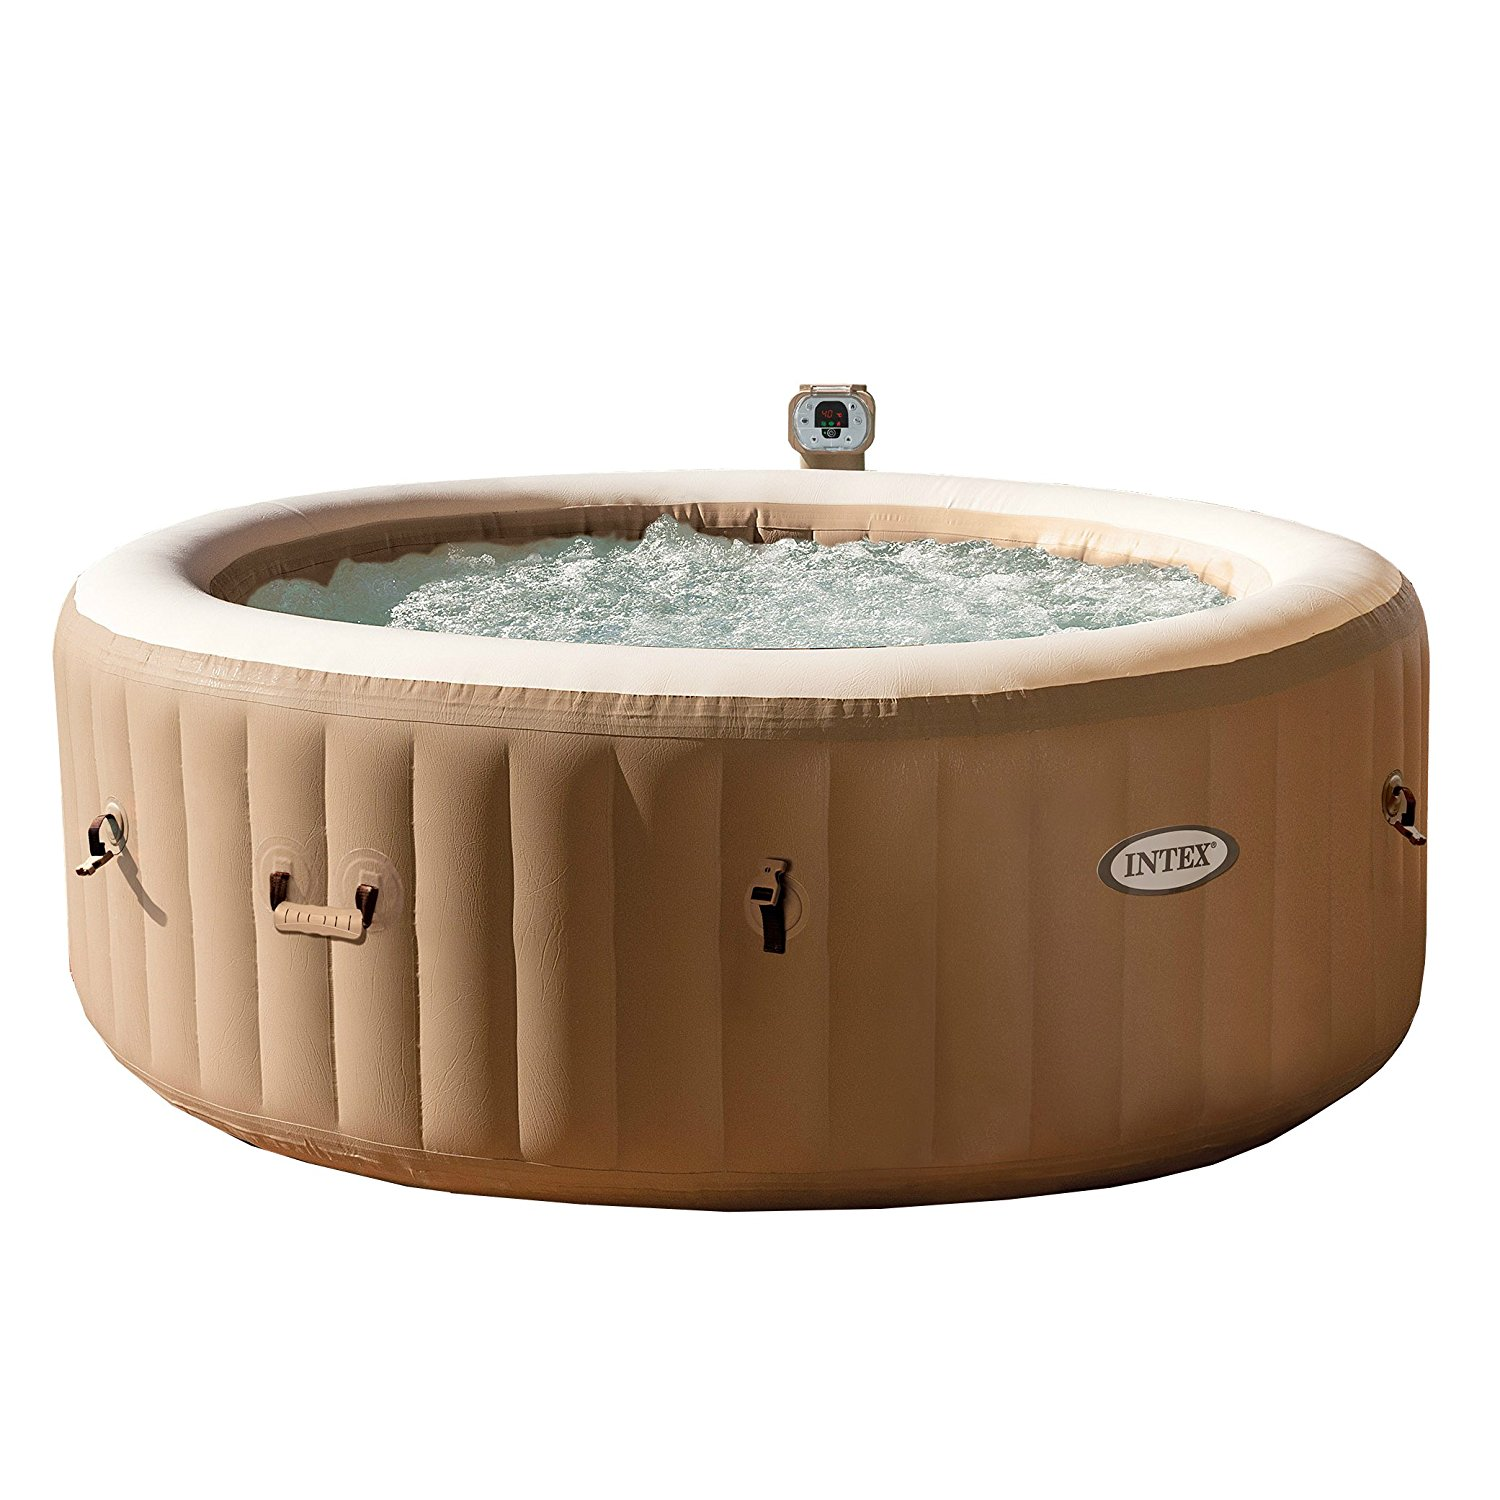 Best hot tubs 2018: the top jacuzzis for the money - iBlogiBlog